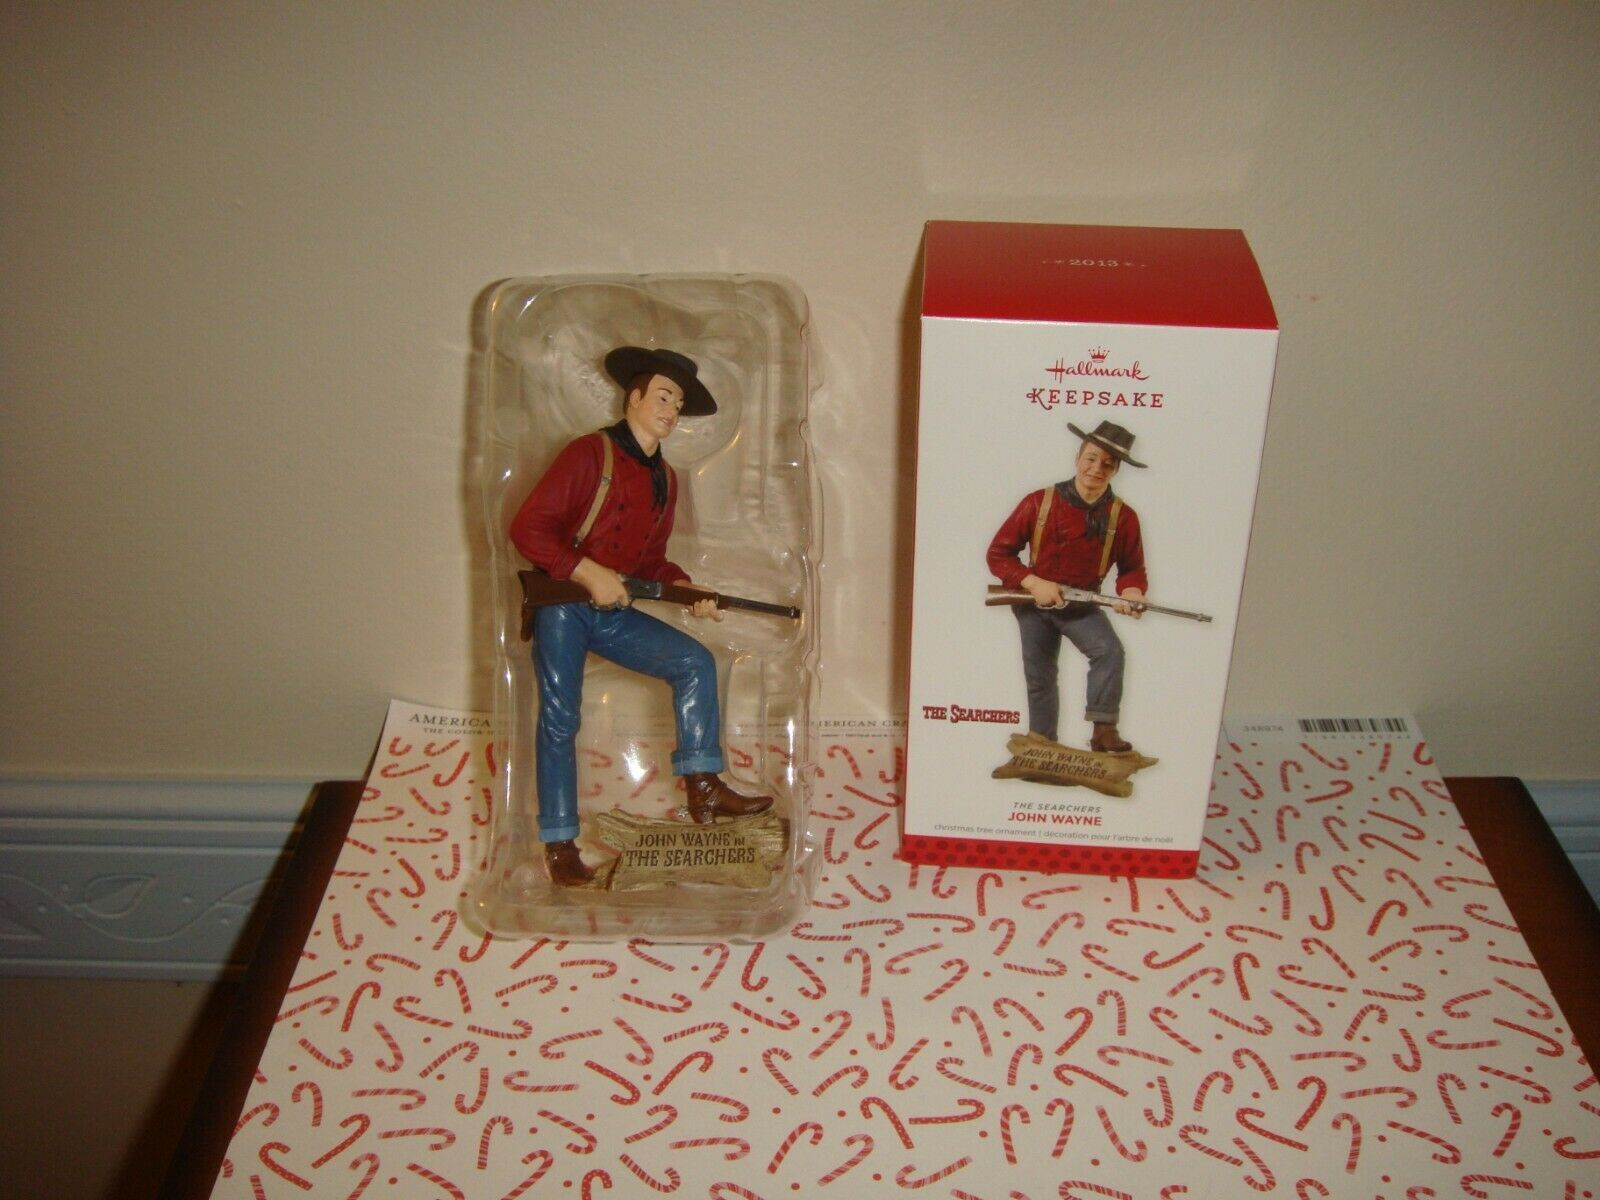 Primary image for Hallmark 2013 The Searchers John Wayne Ornament